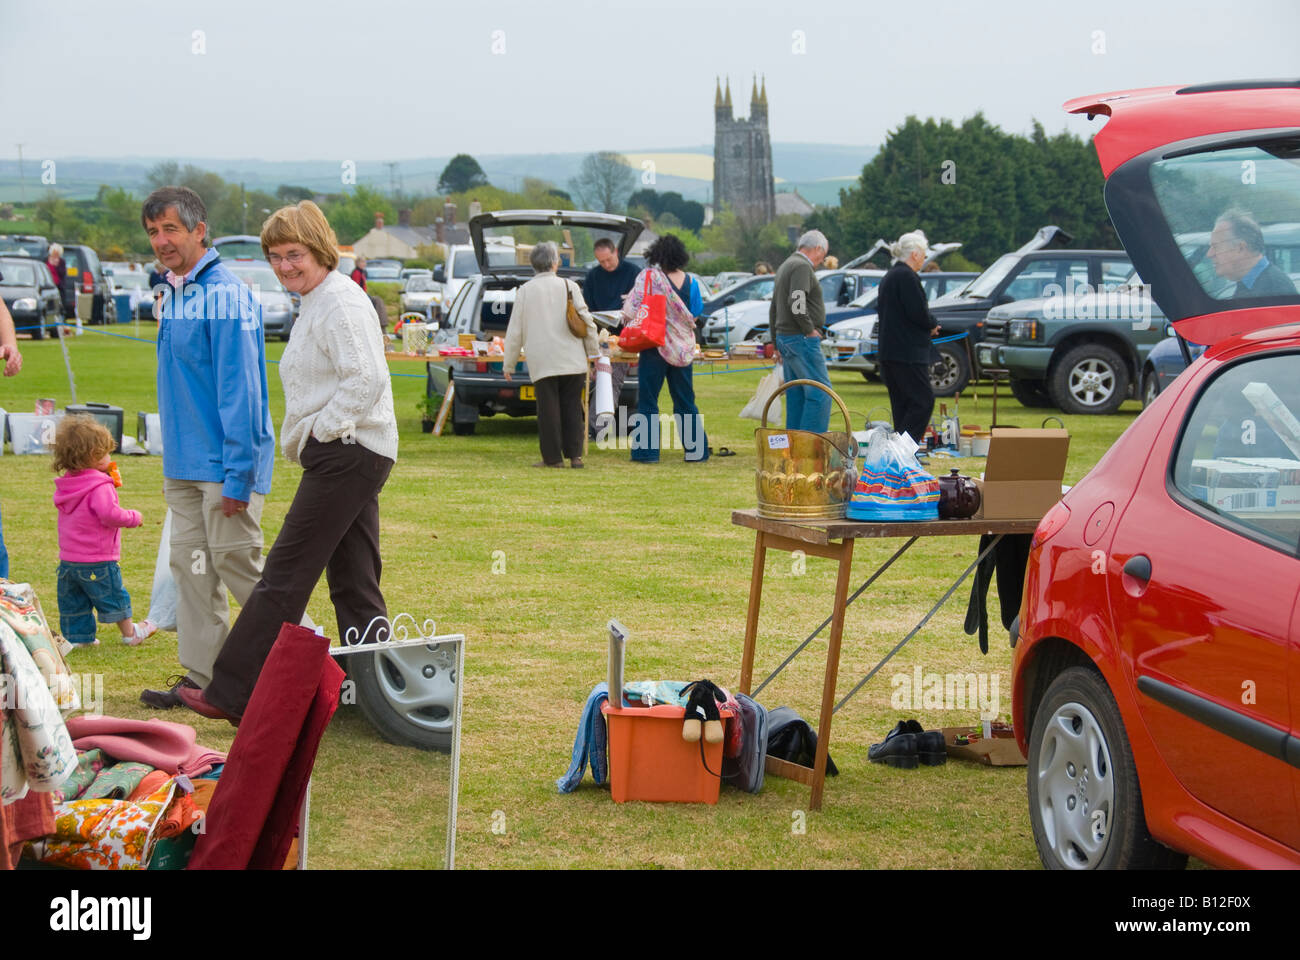 People at a car boot sale in england stock image